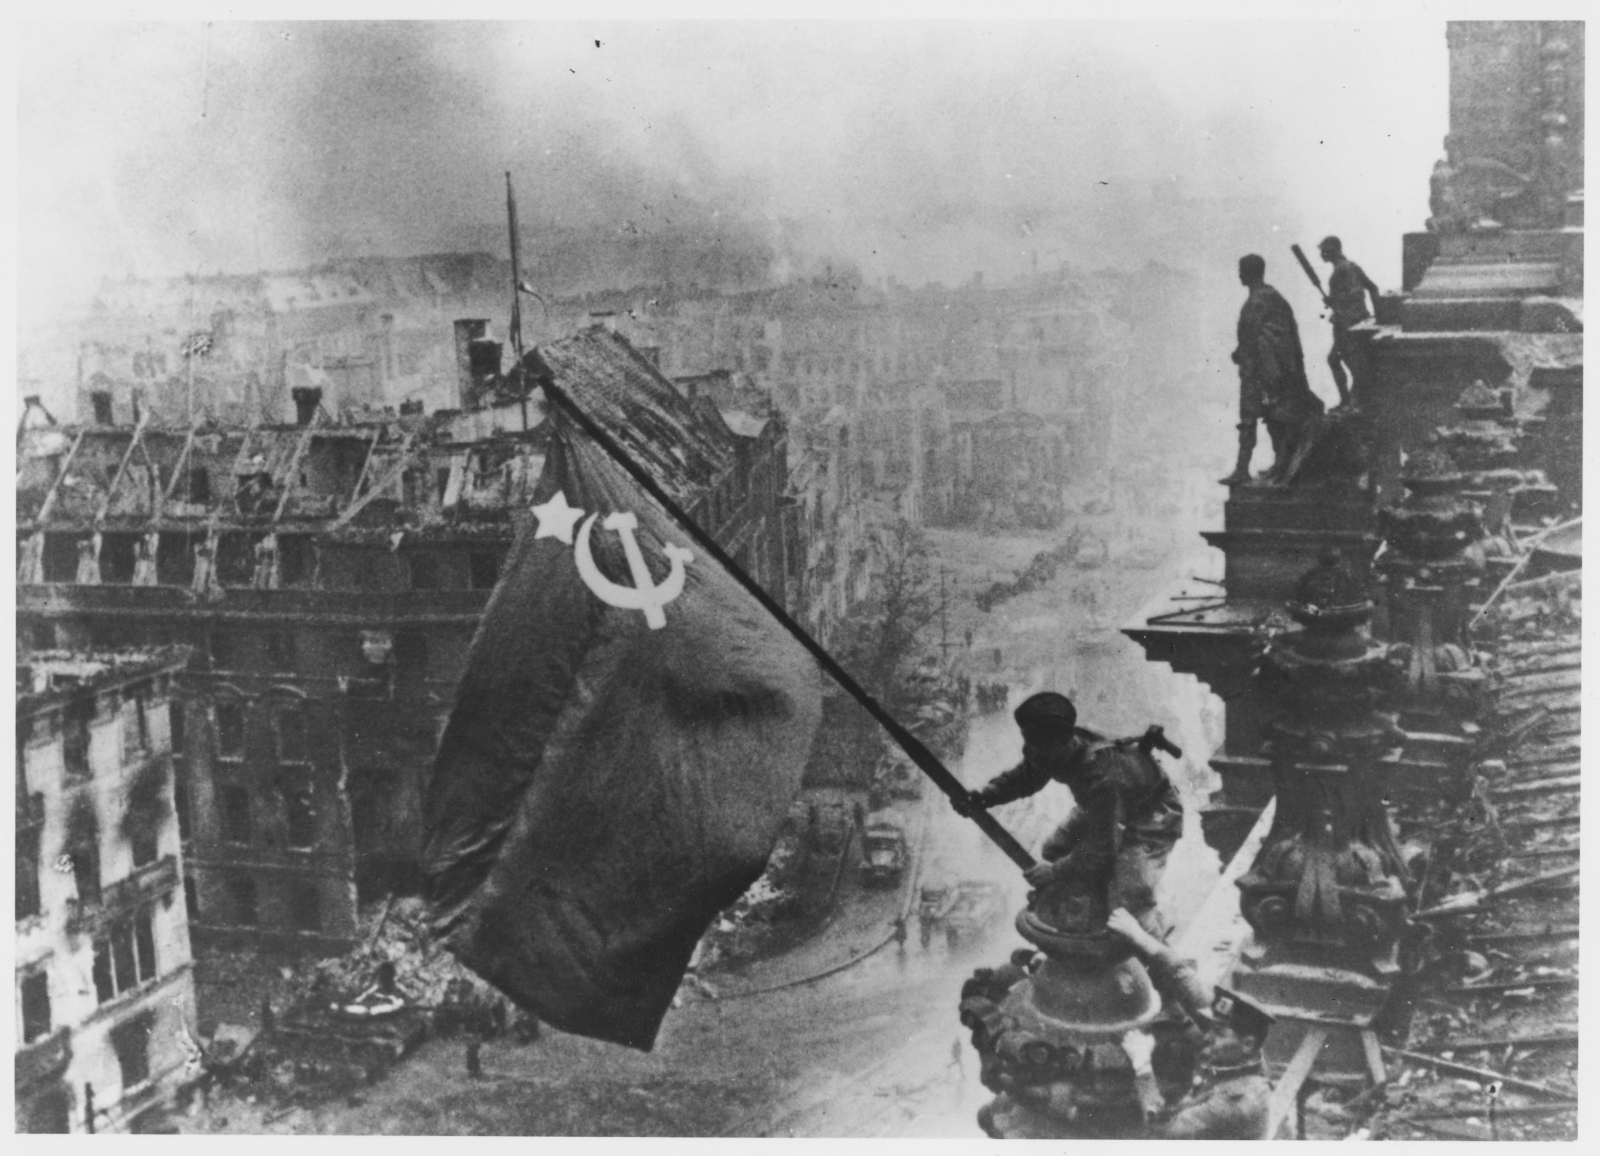 Russian soldiers flying the Red Flag, made from table cloths, over the ruins of the Reichstag in Berlin